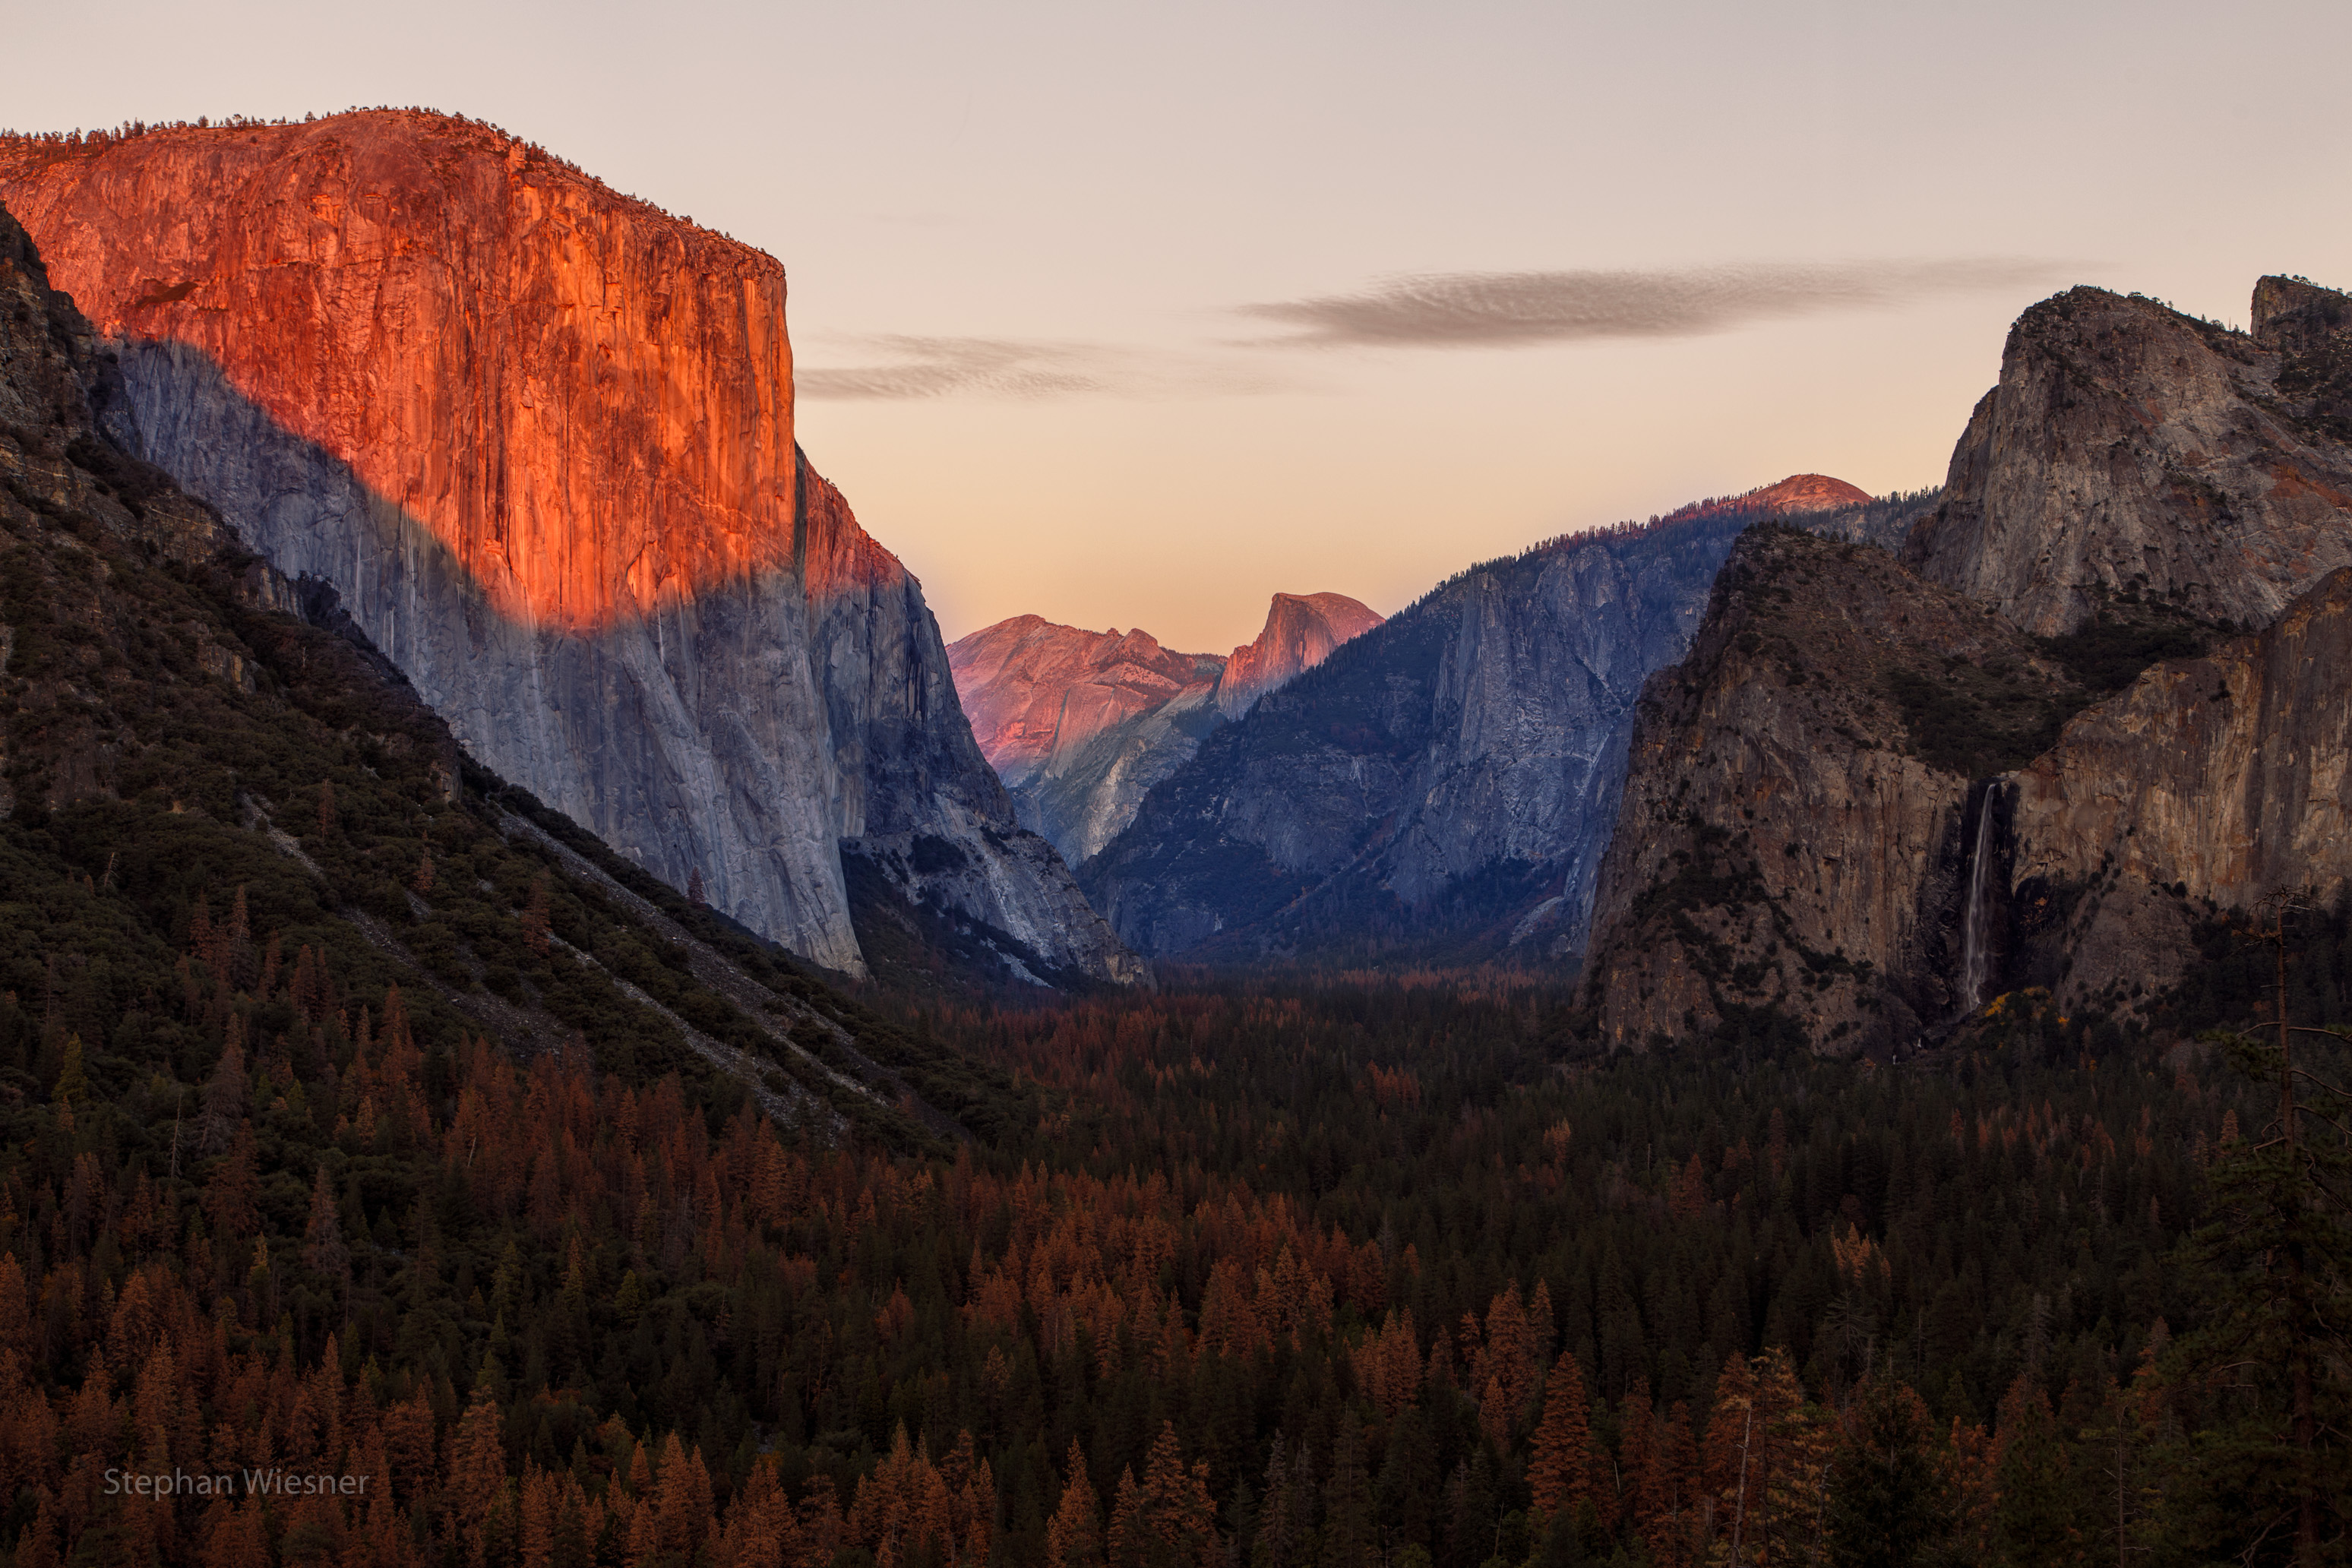 Yosemite-Valley-Tunnel-View-Sonnenuntergang